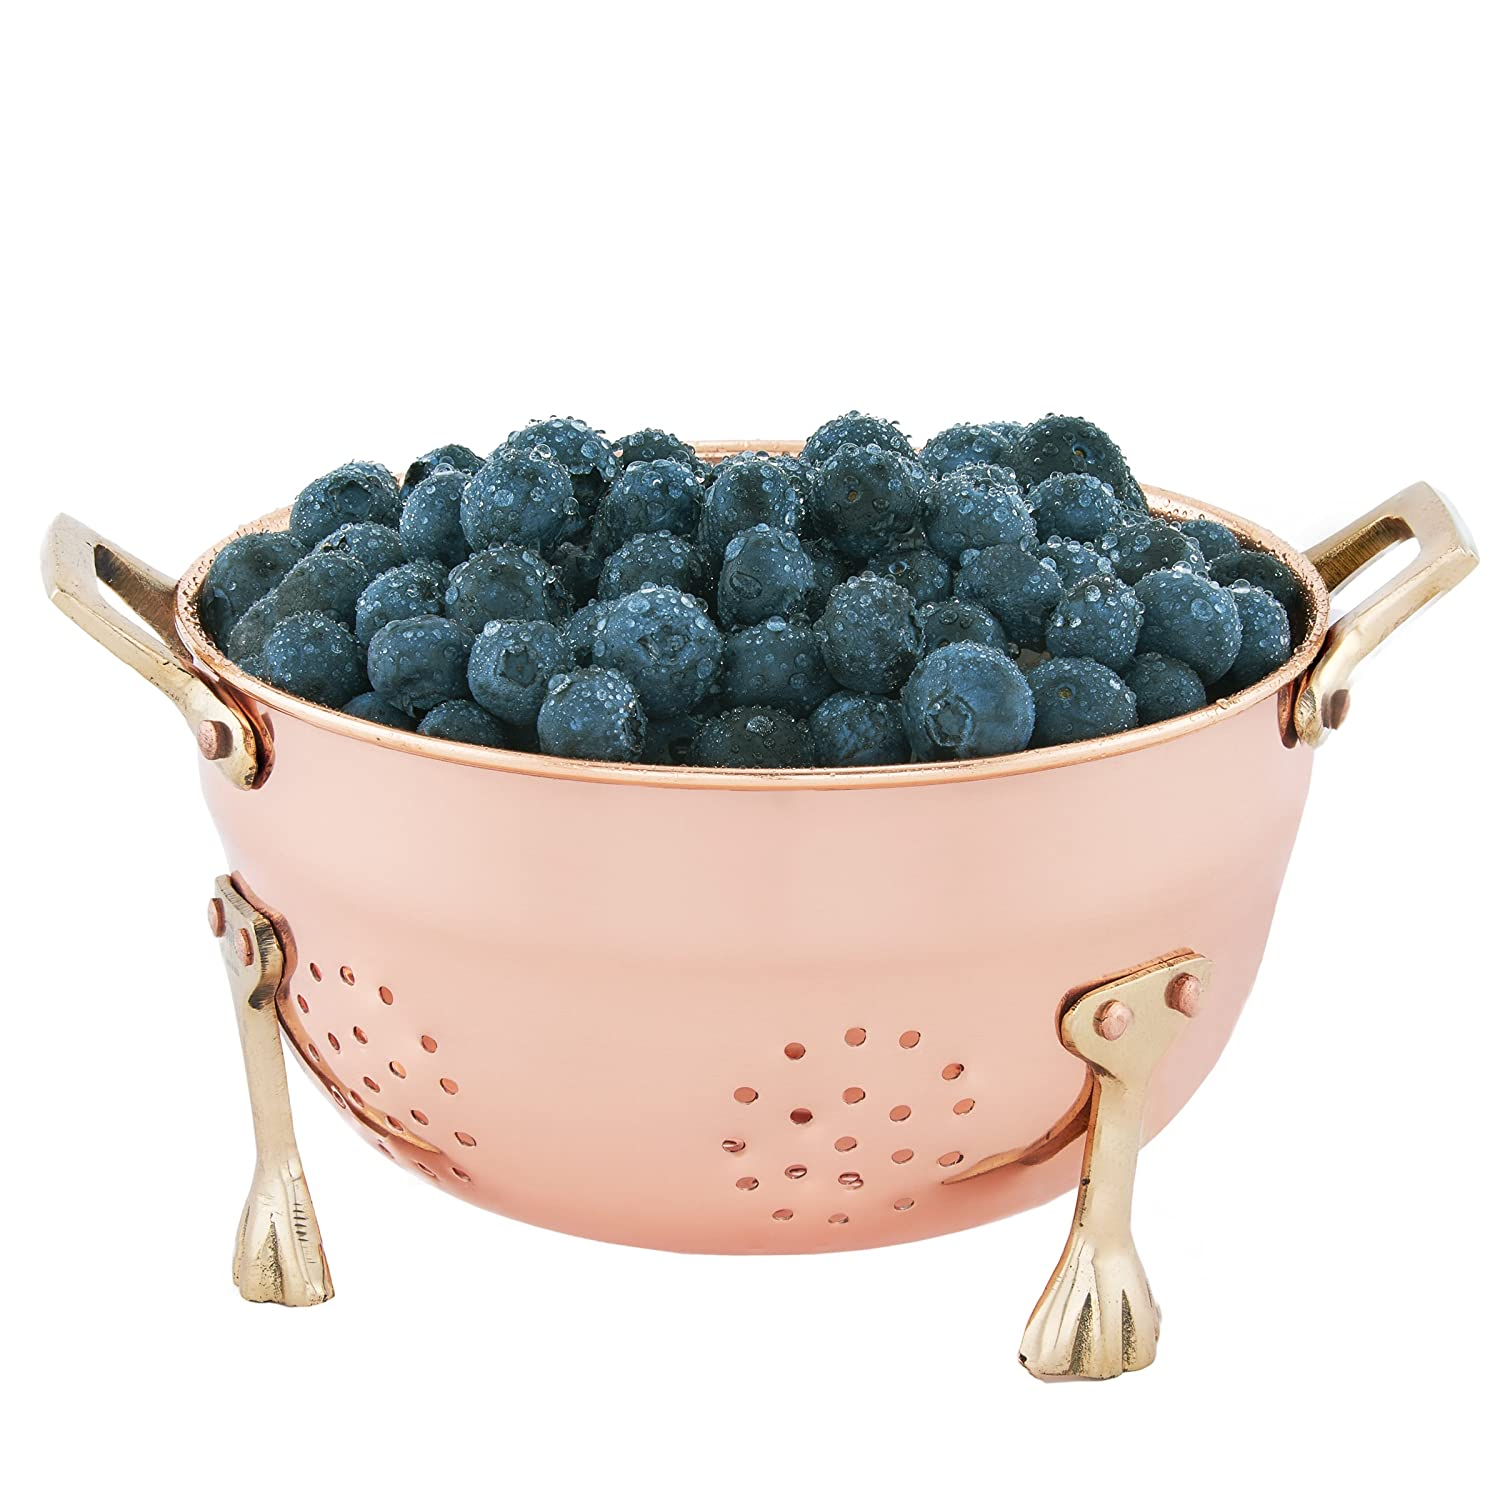 6 Hammered Colander with Handles Stainless Steel Old Dutch 870AQ Aqua Blue Berry